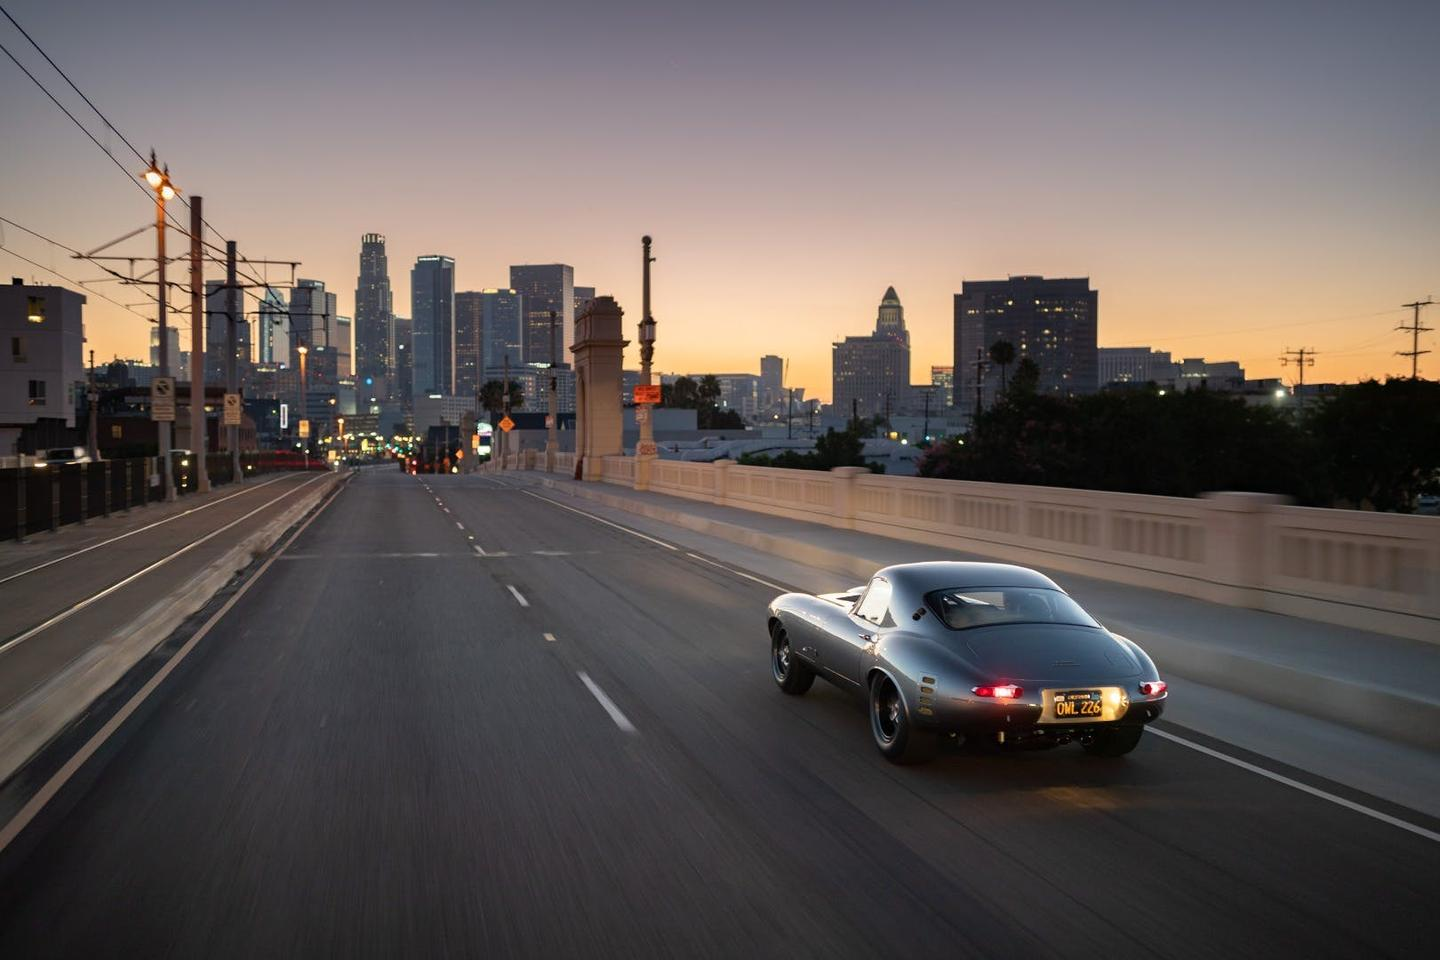 The Jaguar E-Type Low Drag Coupe debuted in California and will soon begin showing at selected locations globally